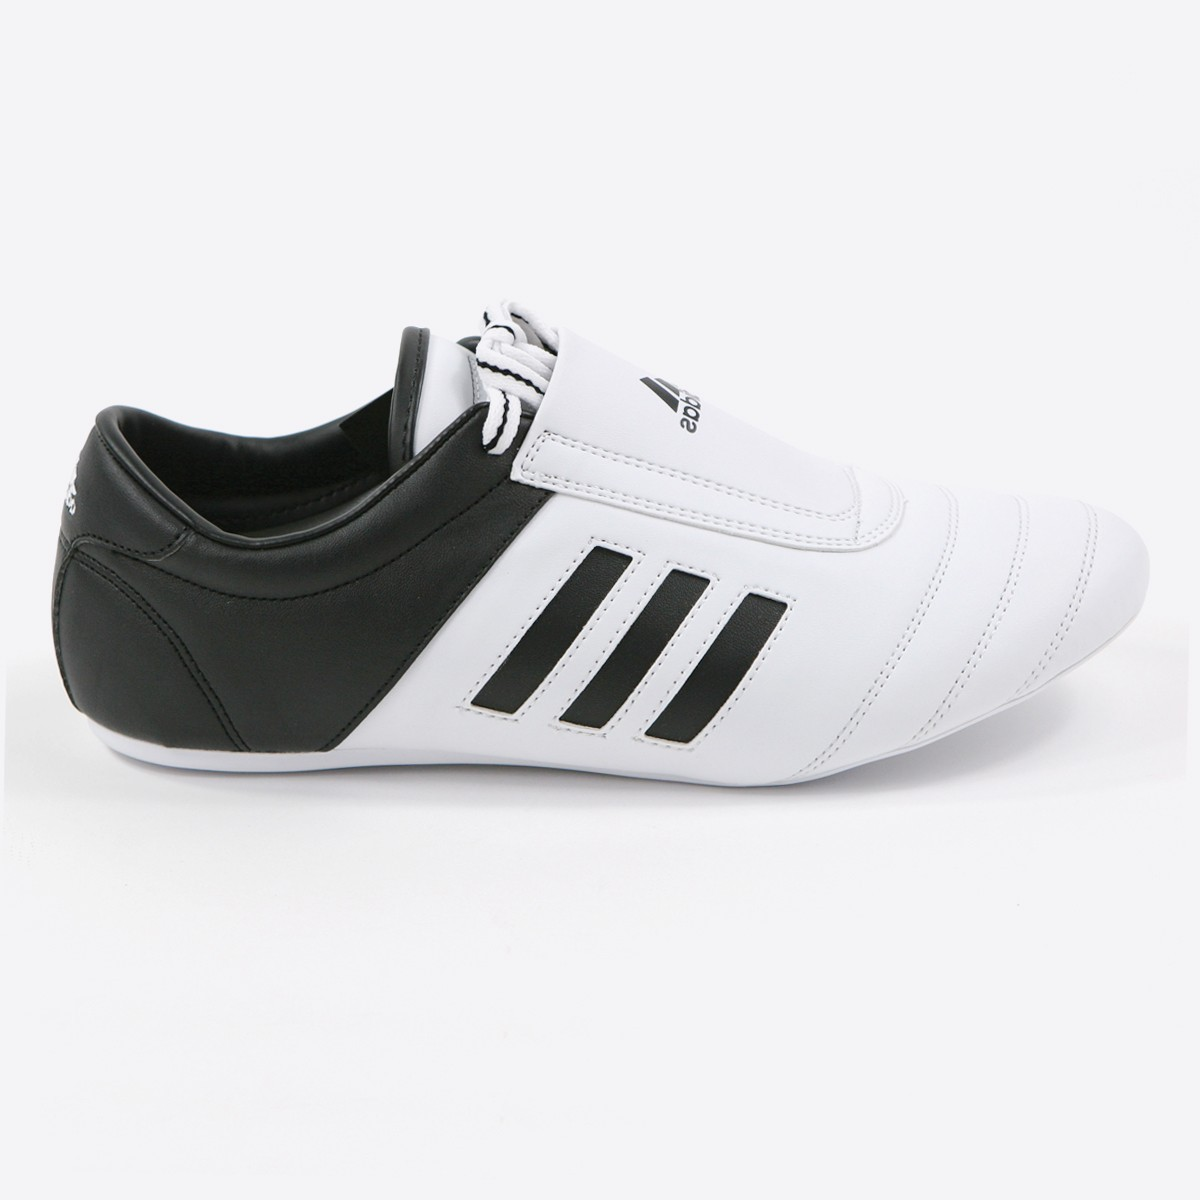 adidas men's taekwondo trainers slip on training fitness shoes